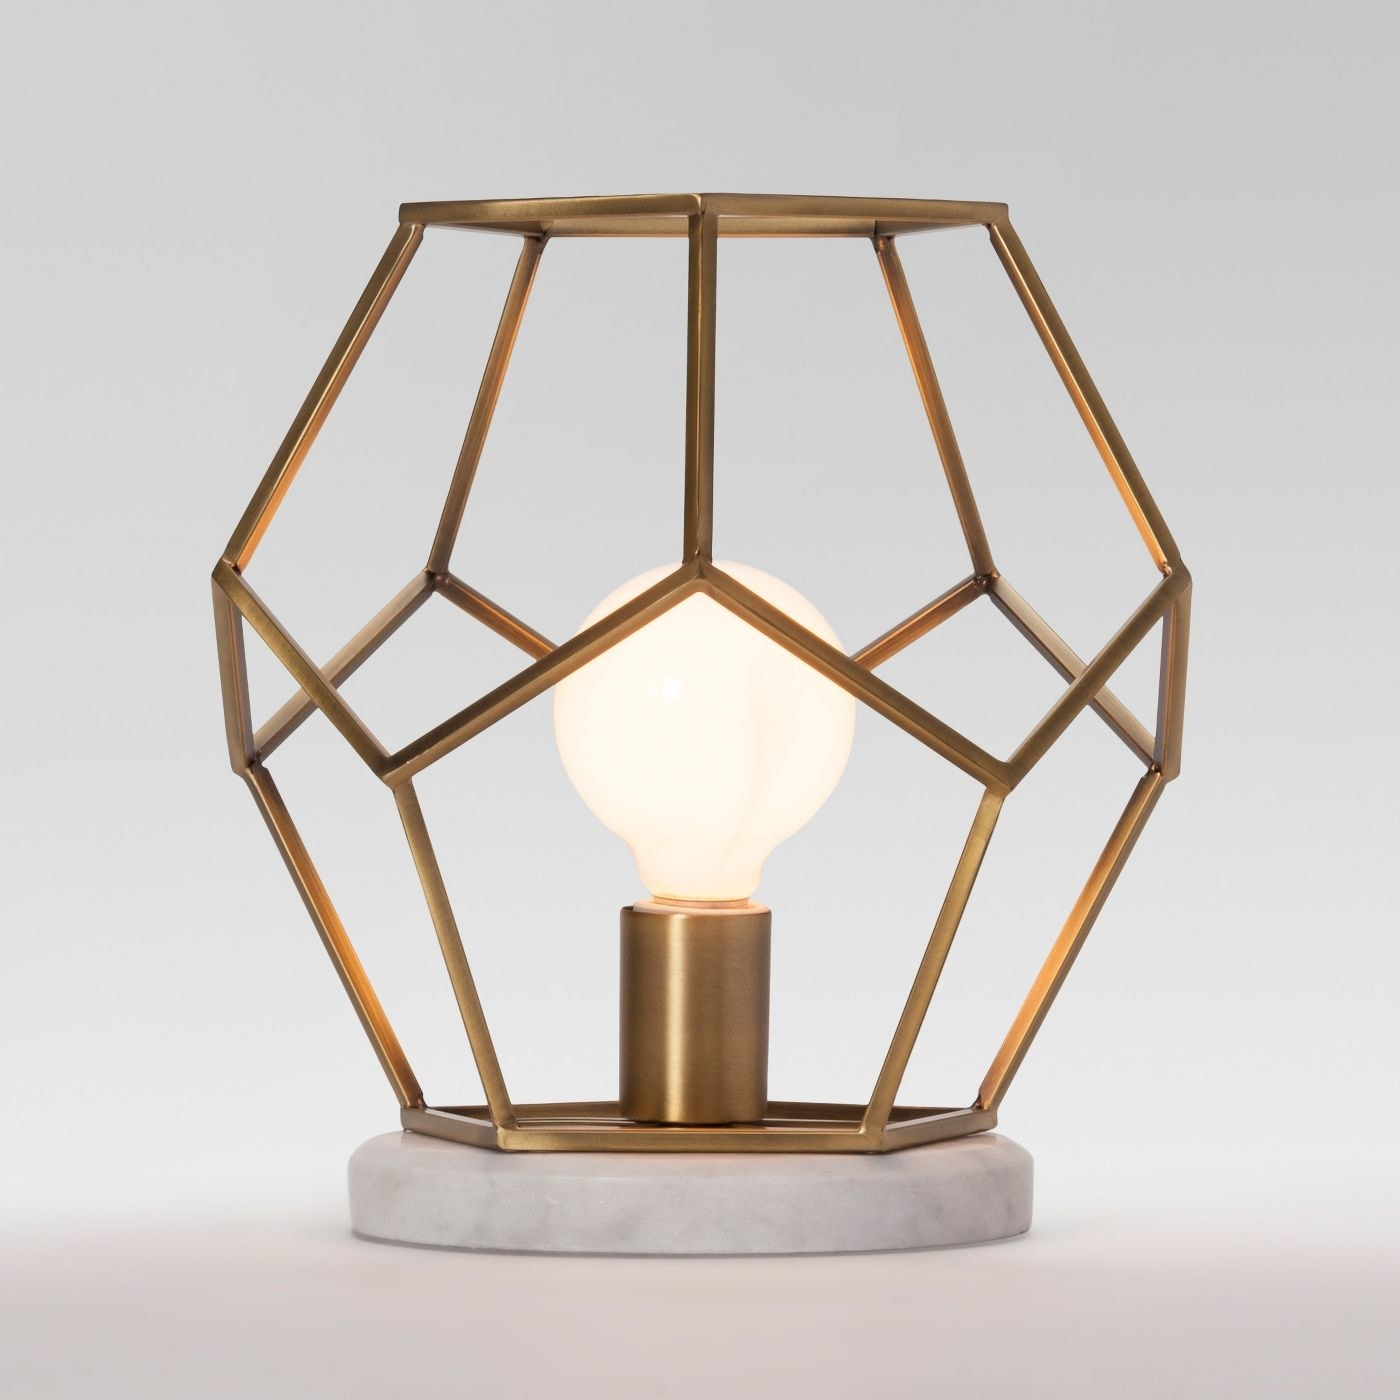 The brass lamp with a marble base